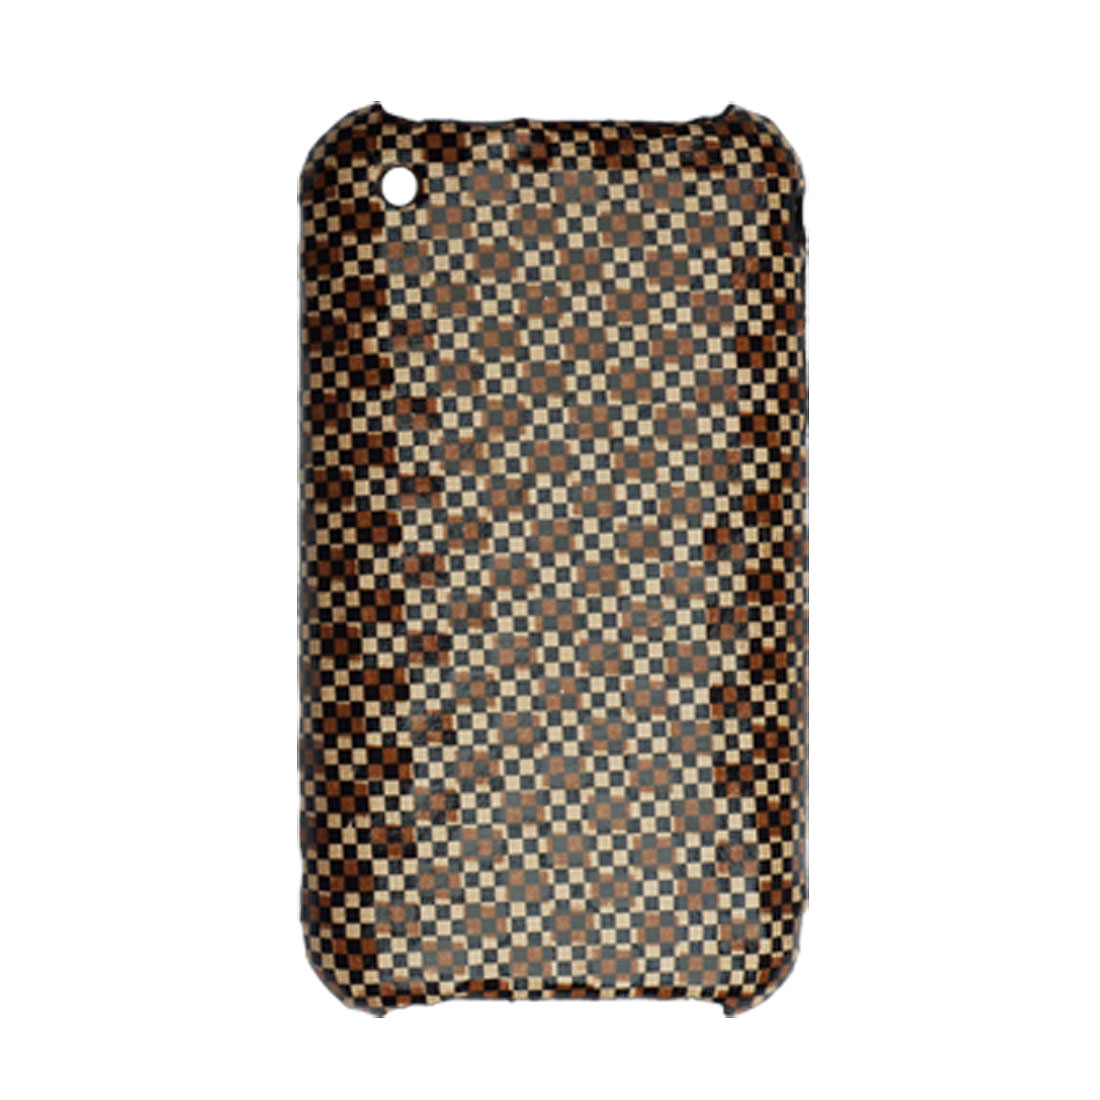 Stylish Checked Coated Plastic Back Case for iPhone 3G